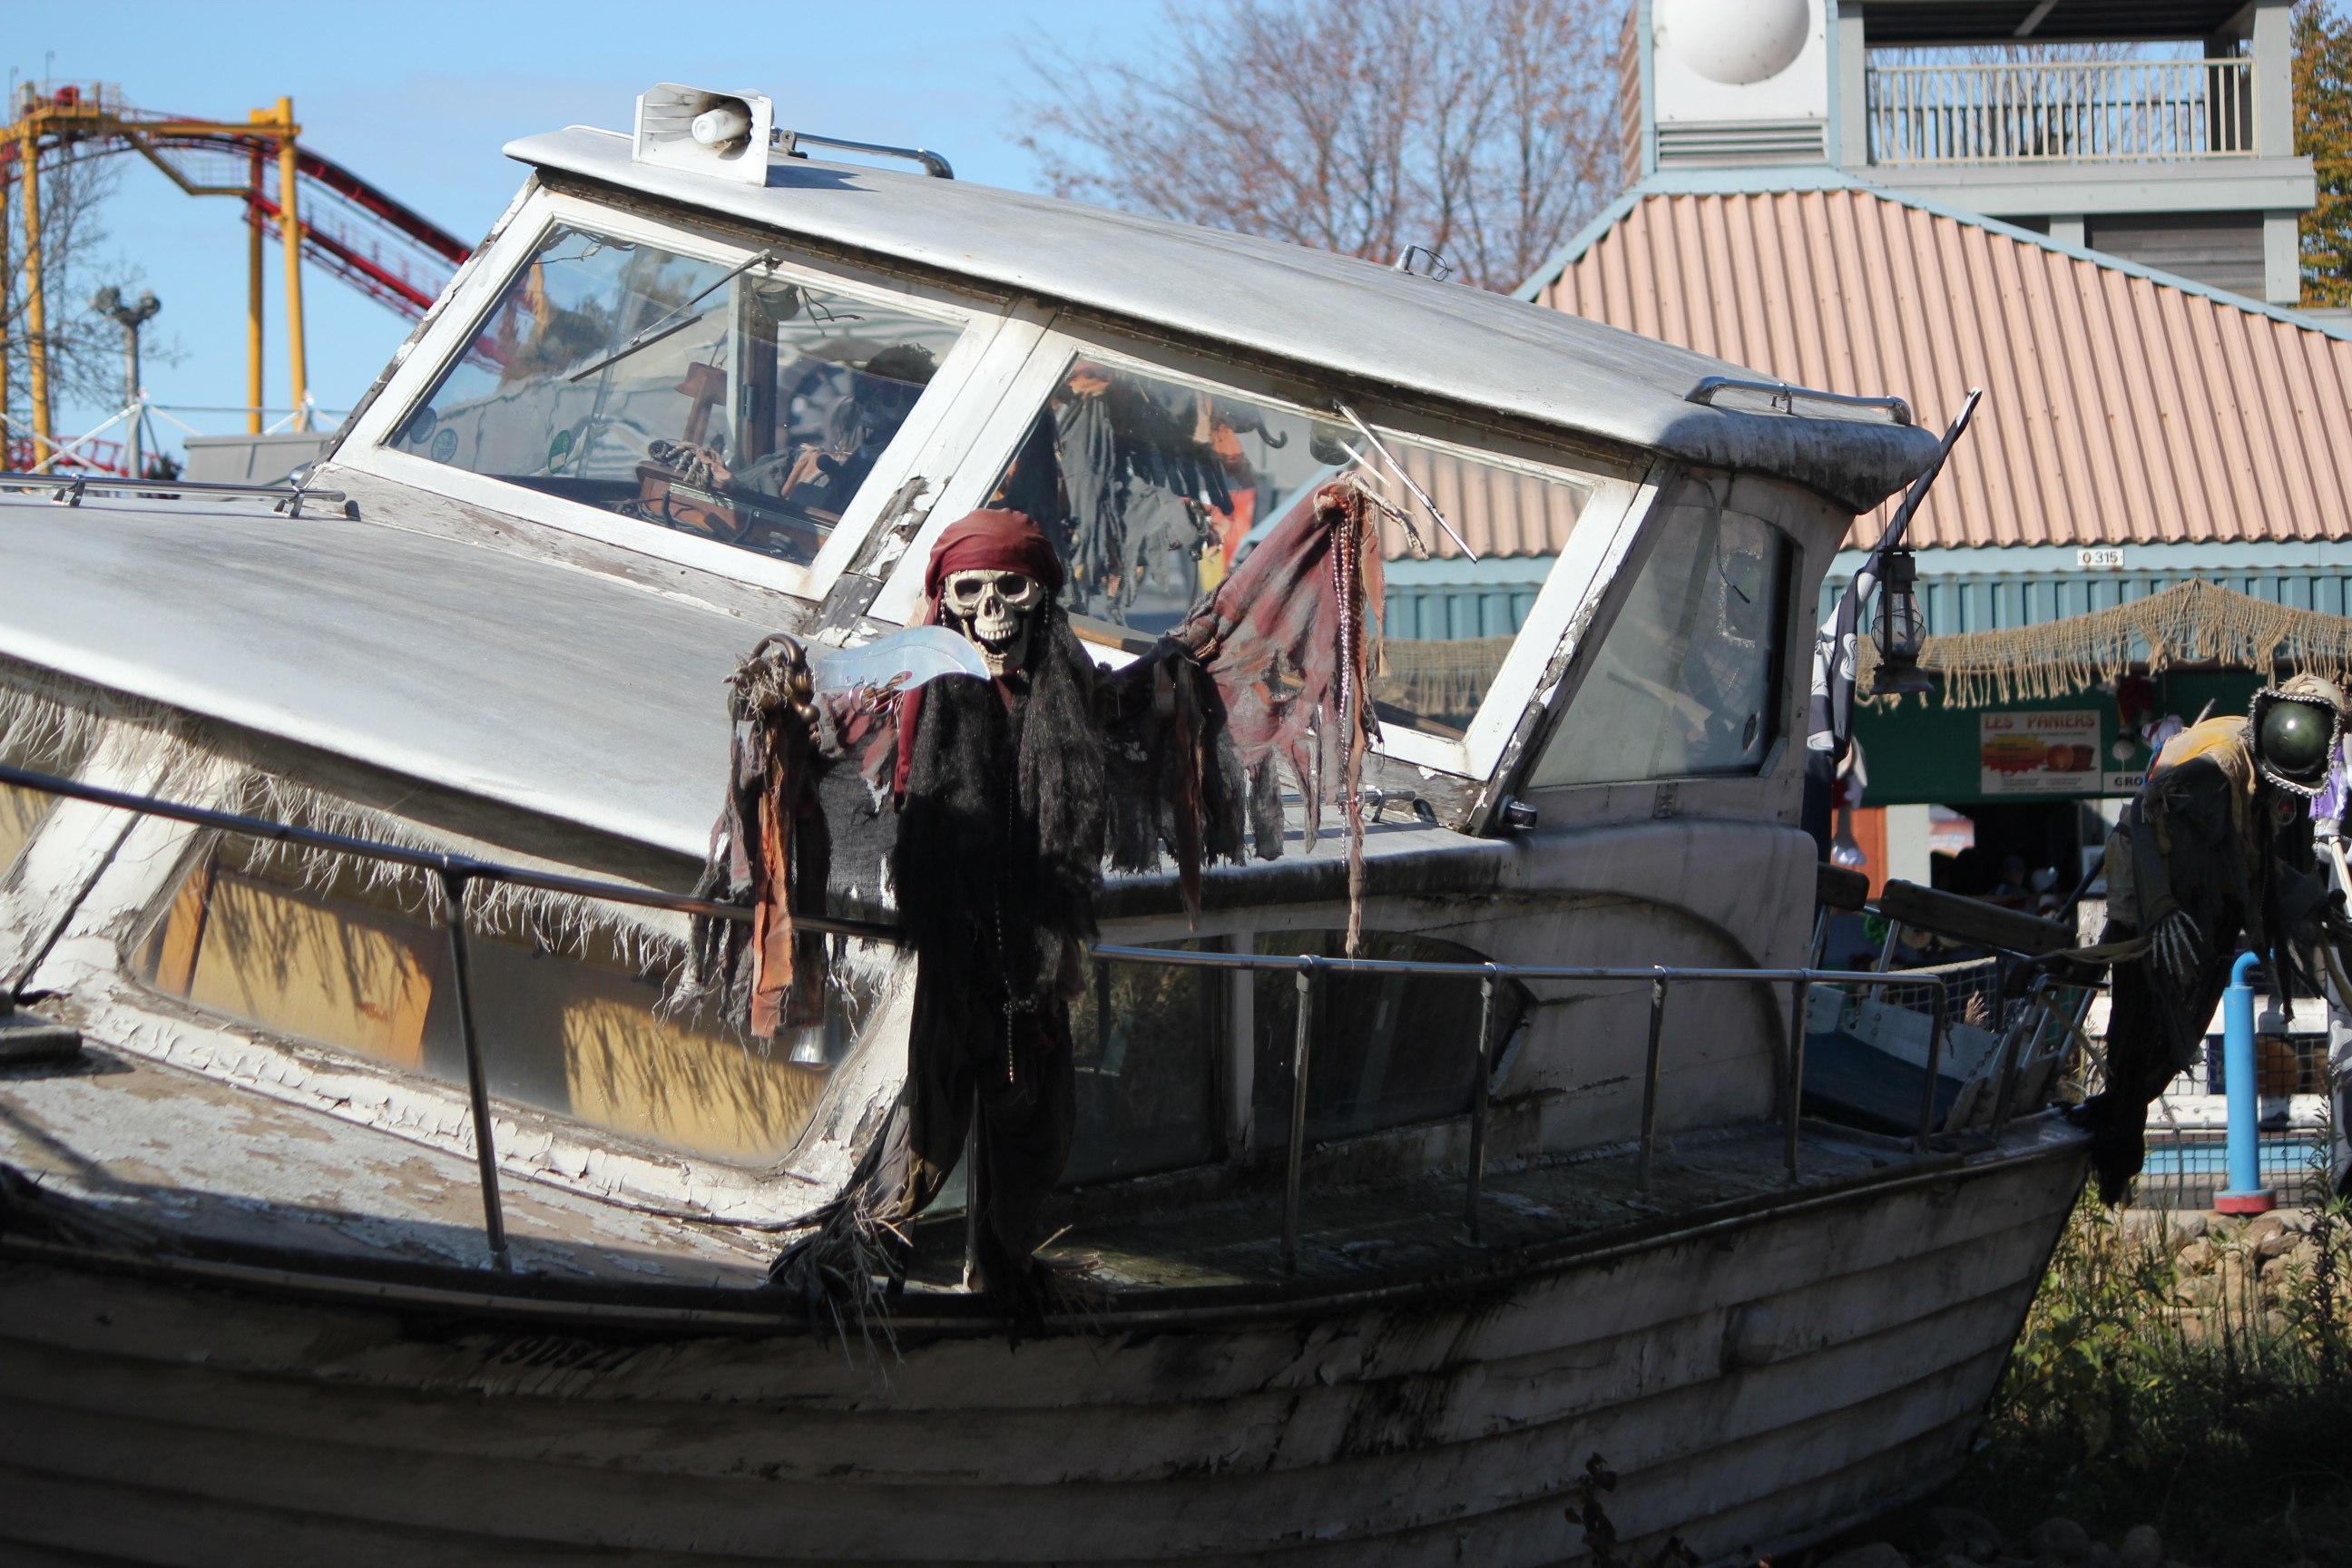 Skeleton on a Boat; Montreal, Canada; 2011